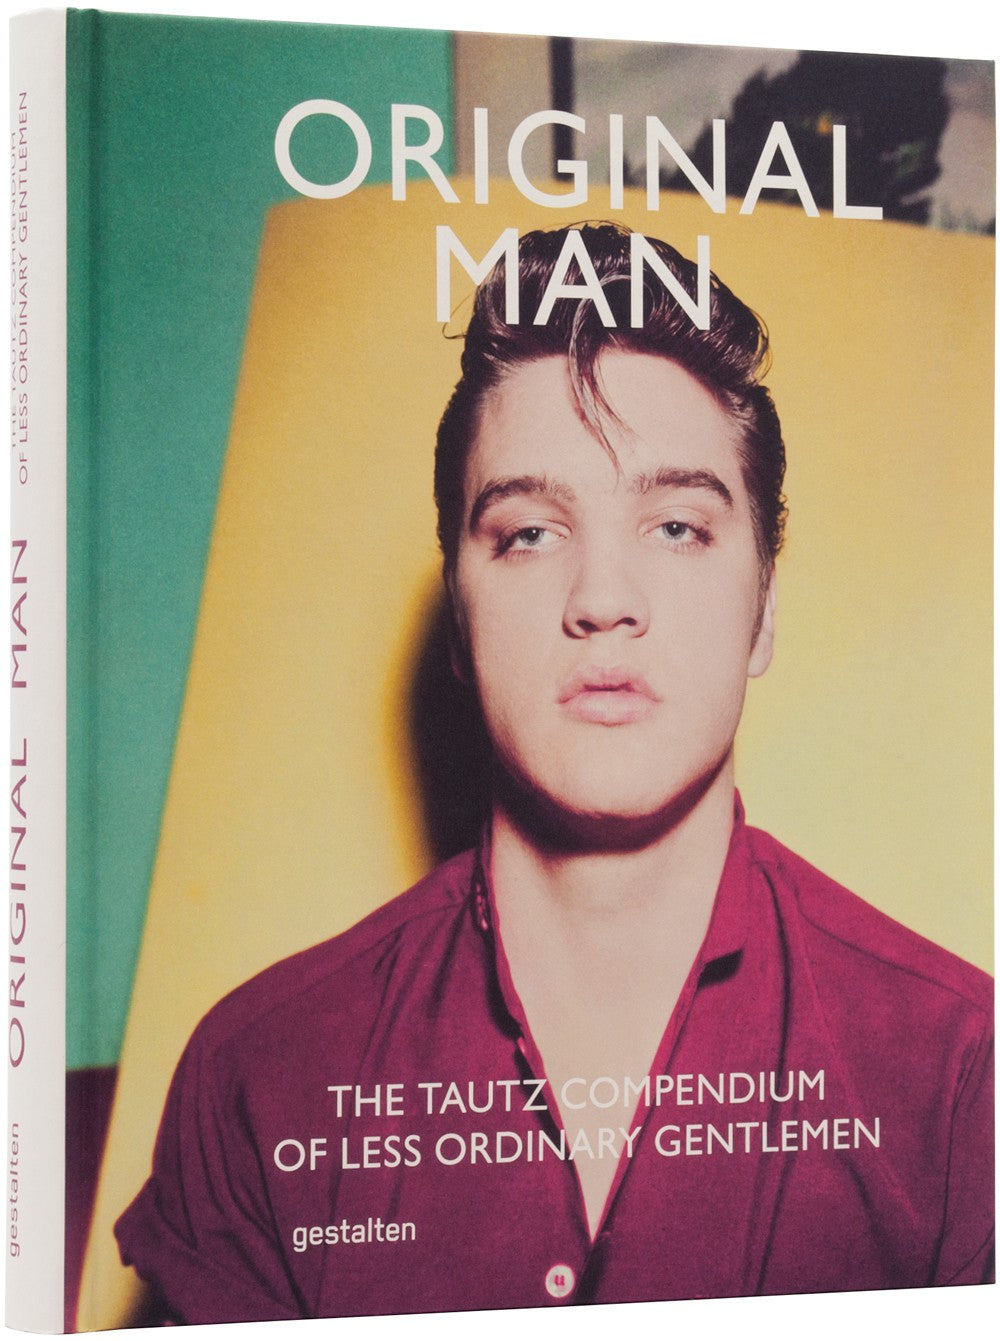 Original Man, Books and Magazines, Gestalten Publishers - Felding Co